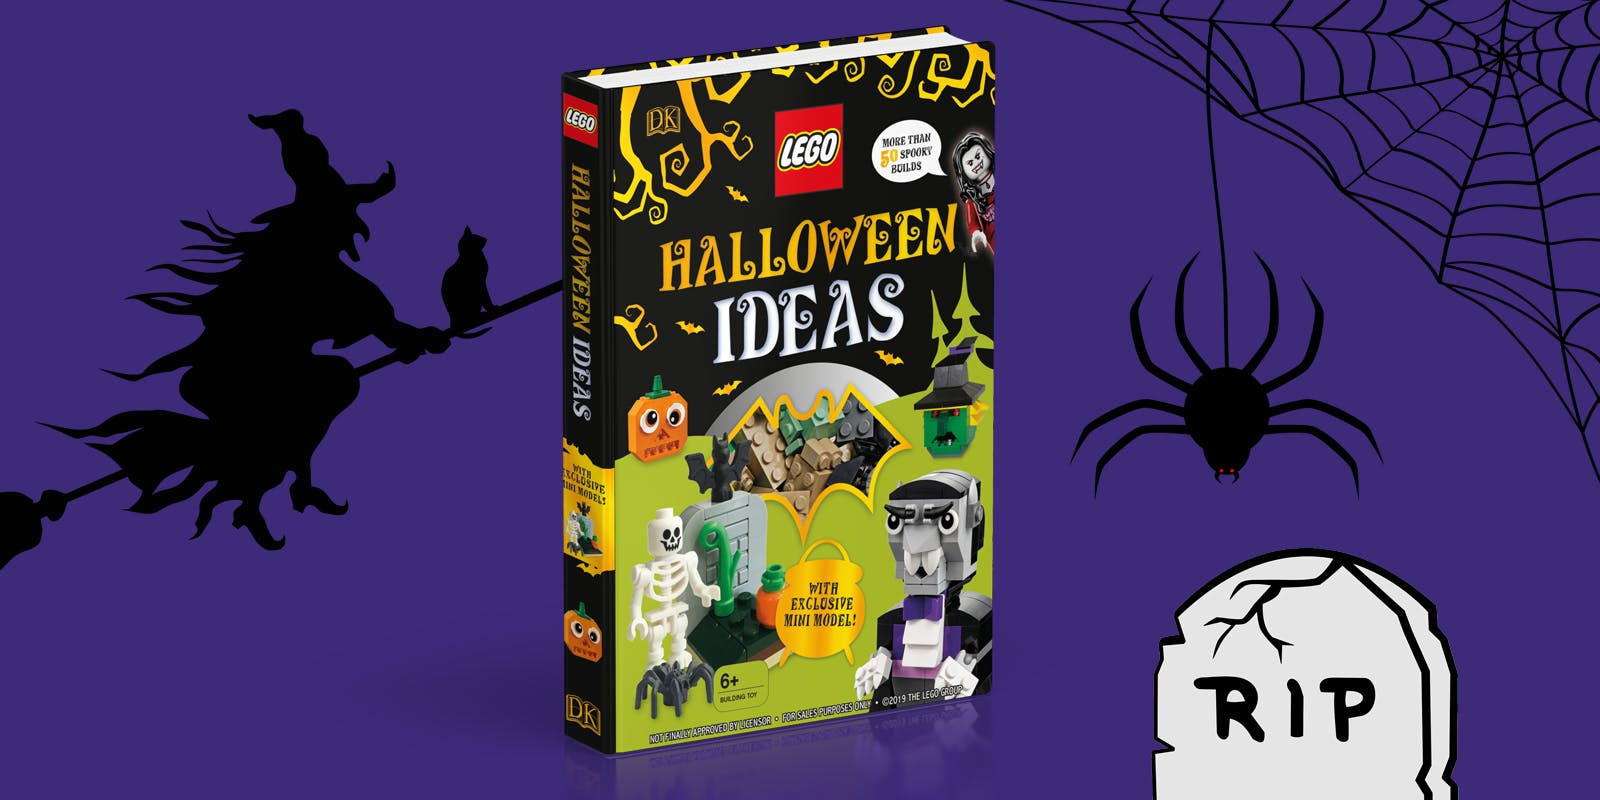 LEGO Halloween Ideas activity pack